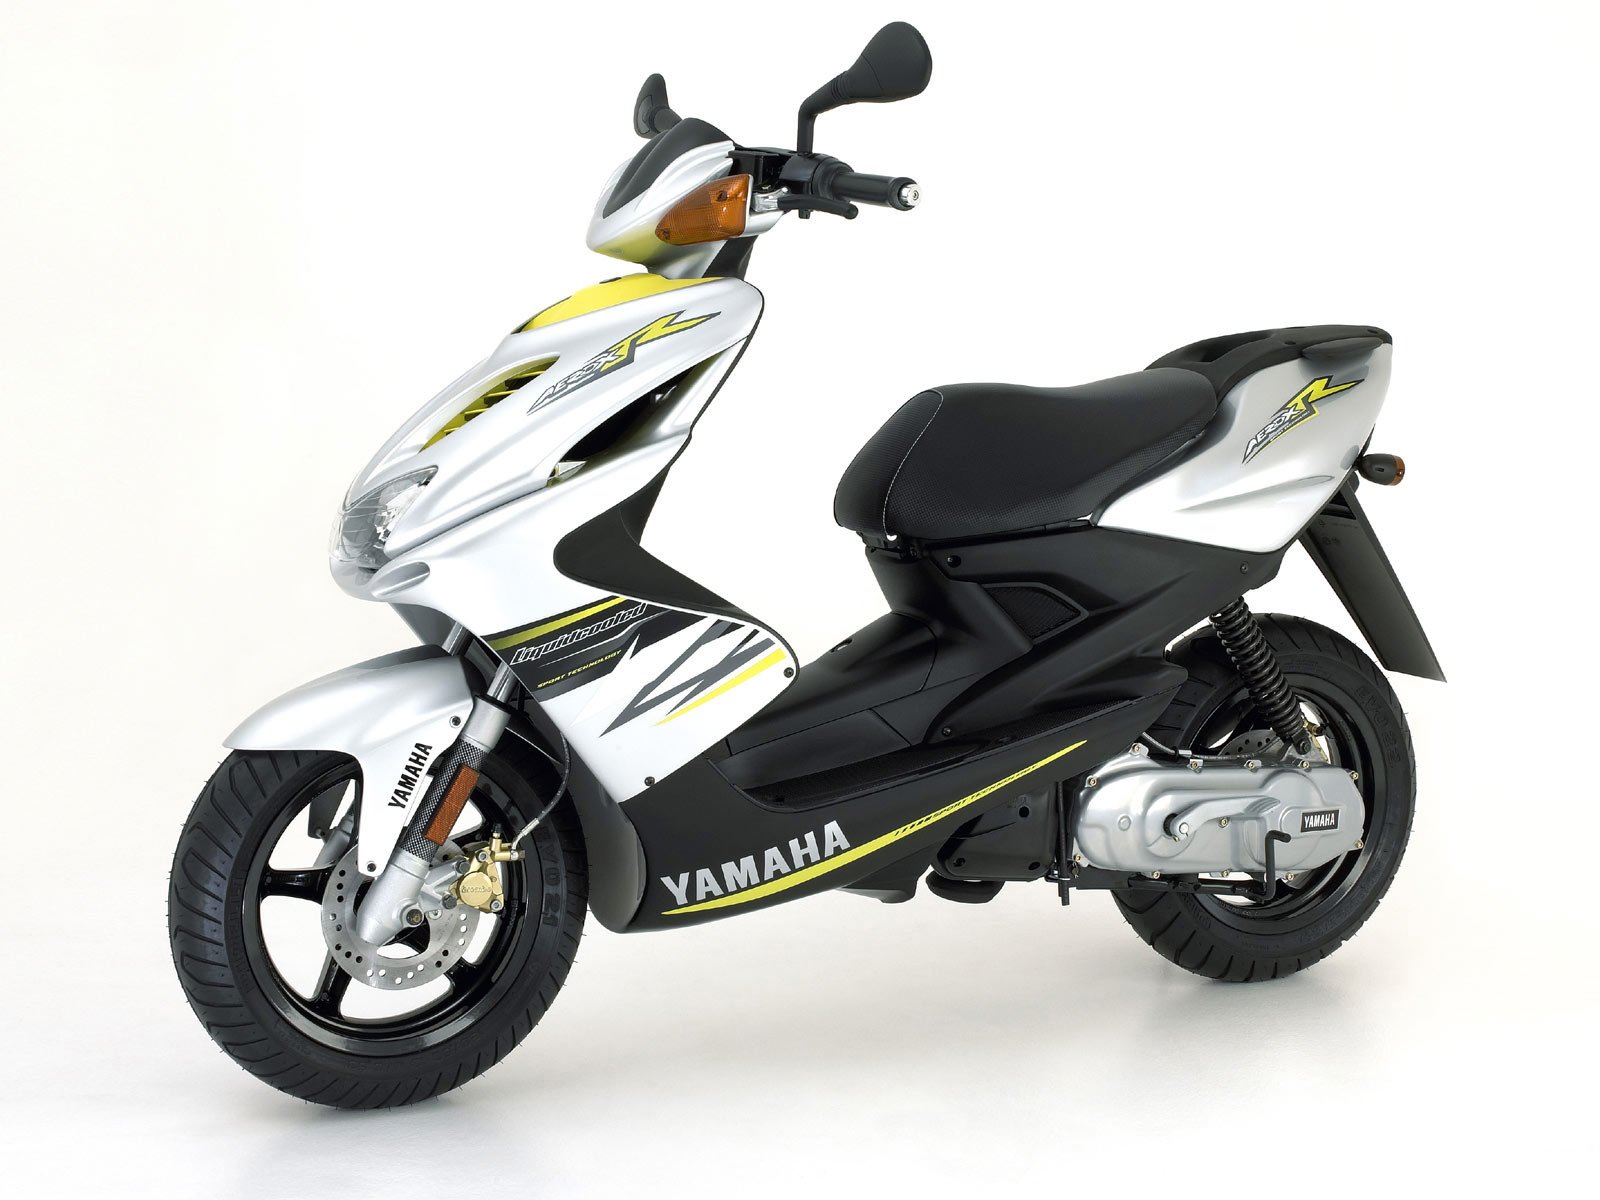 2006 yamaha yq 50 aerox r pictures super moto and sexy girls. Black Bedroom Furniture Sets. Home Design Ideas